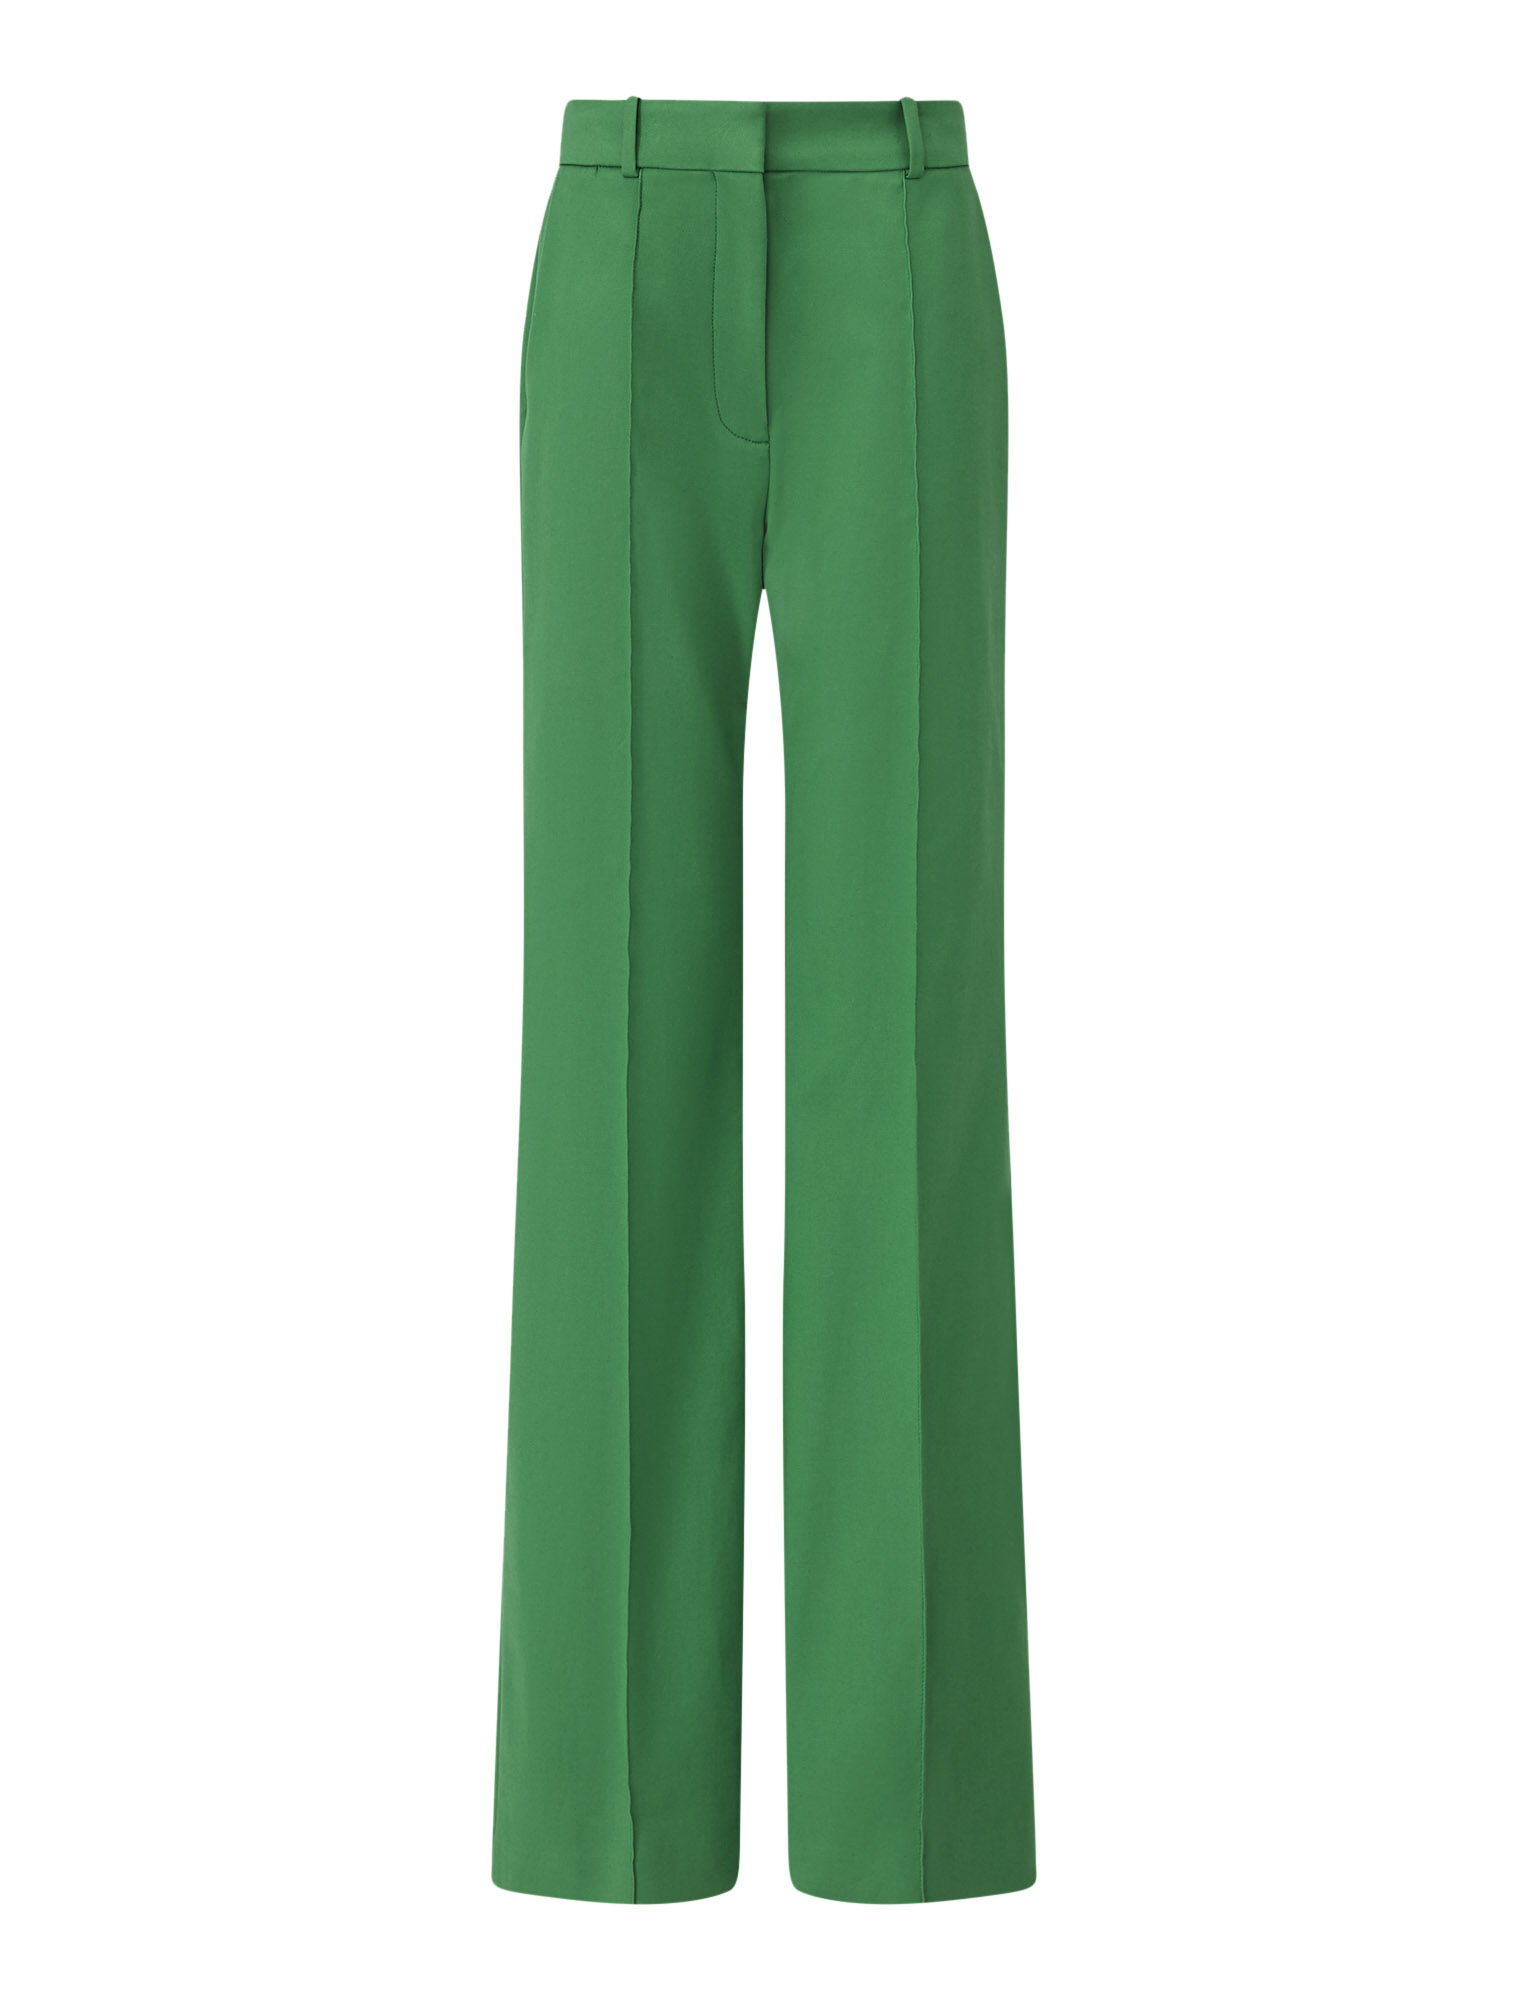 Joseph, Richard Double Cotton Stretch Trousers, in AMAZON